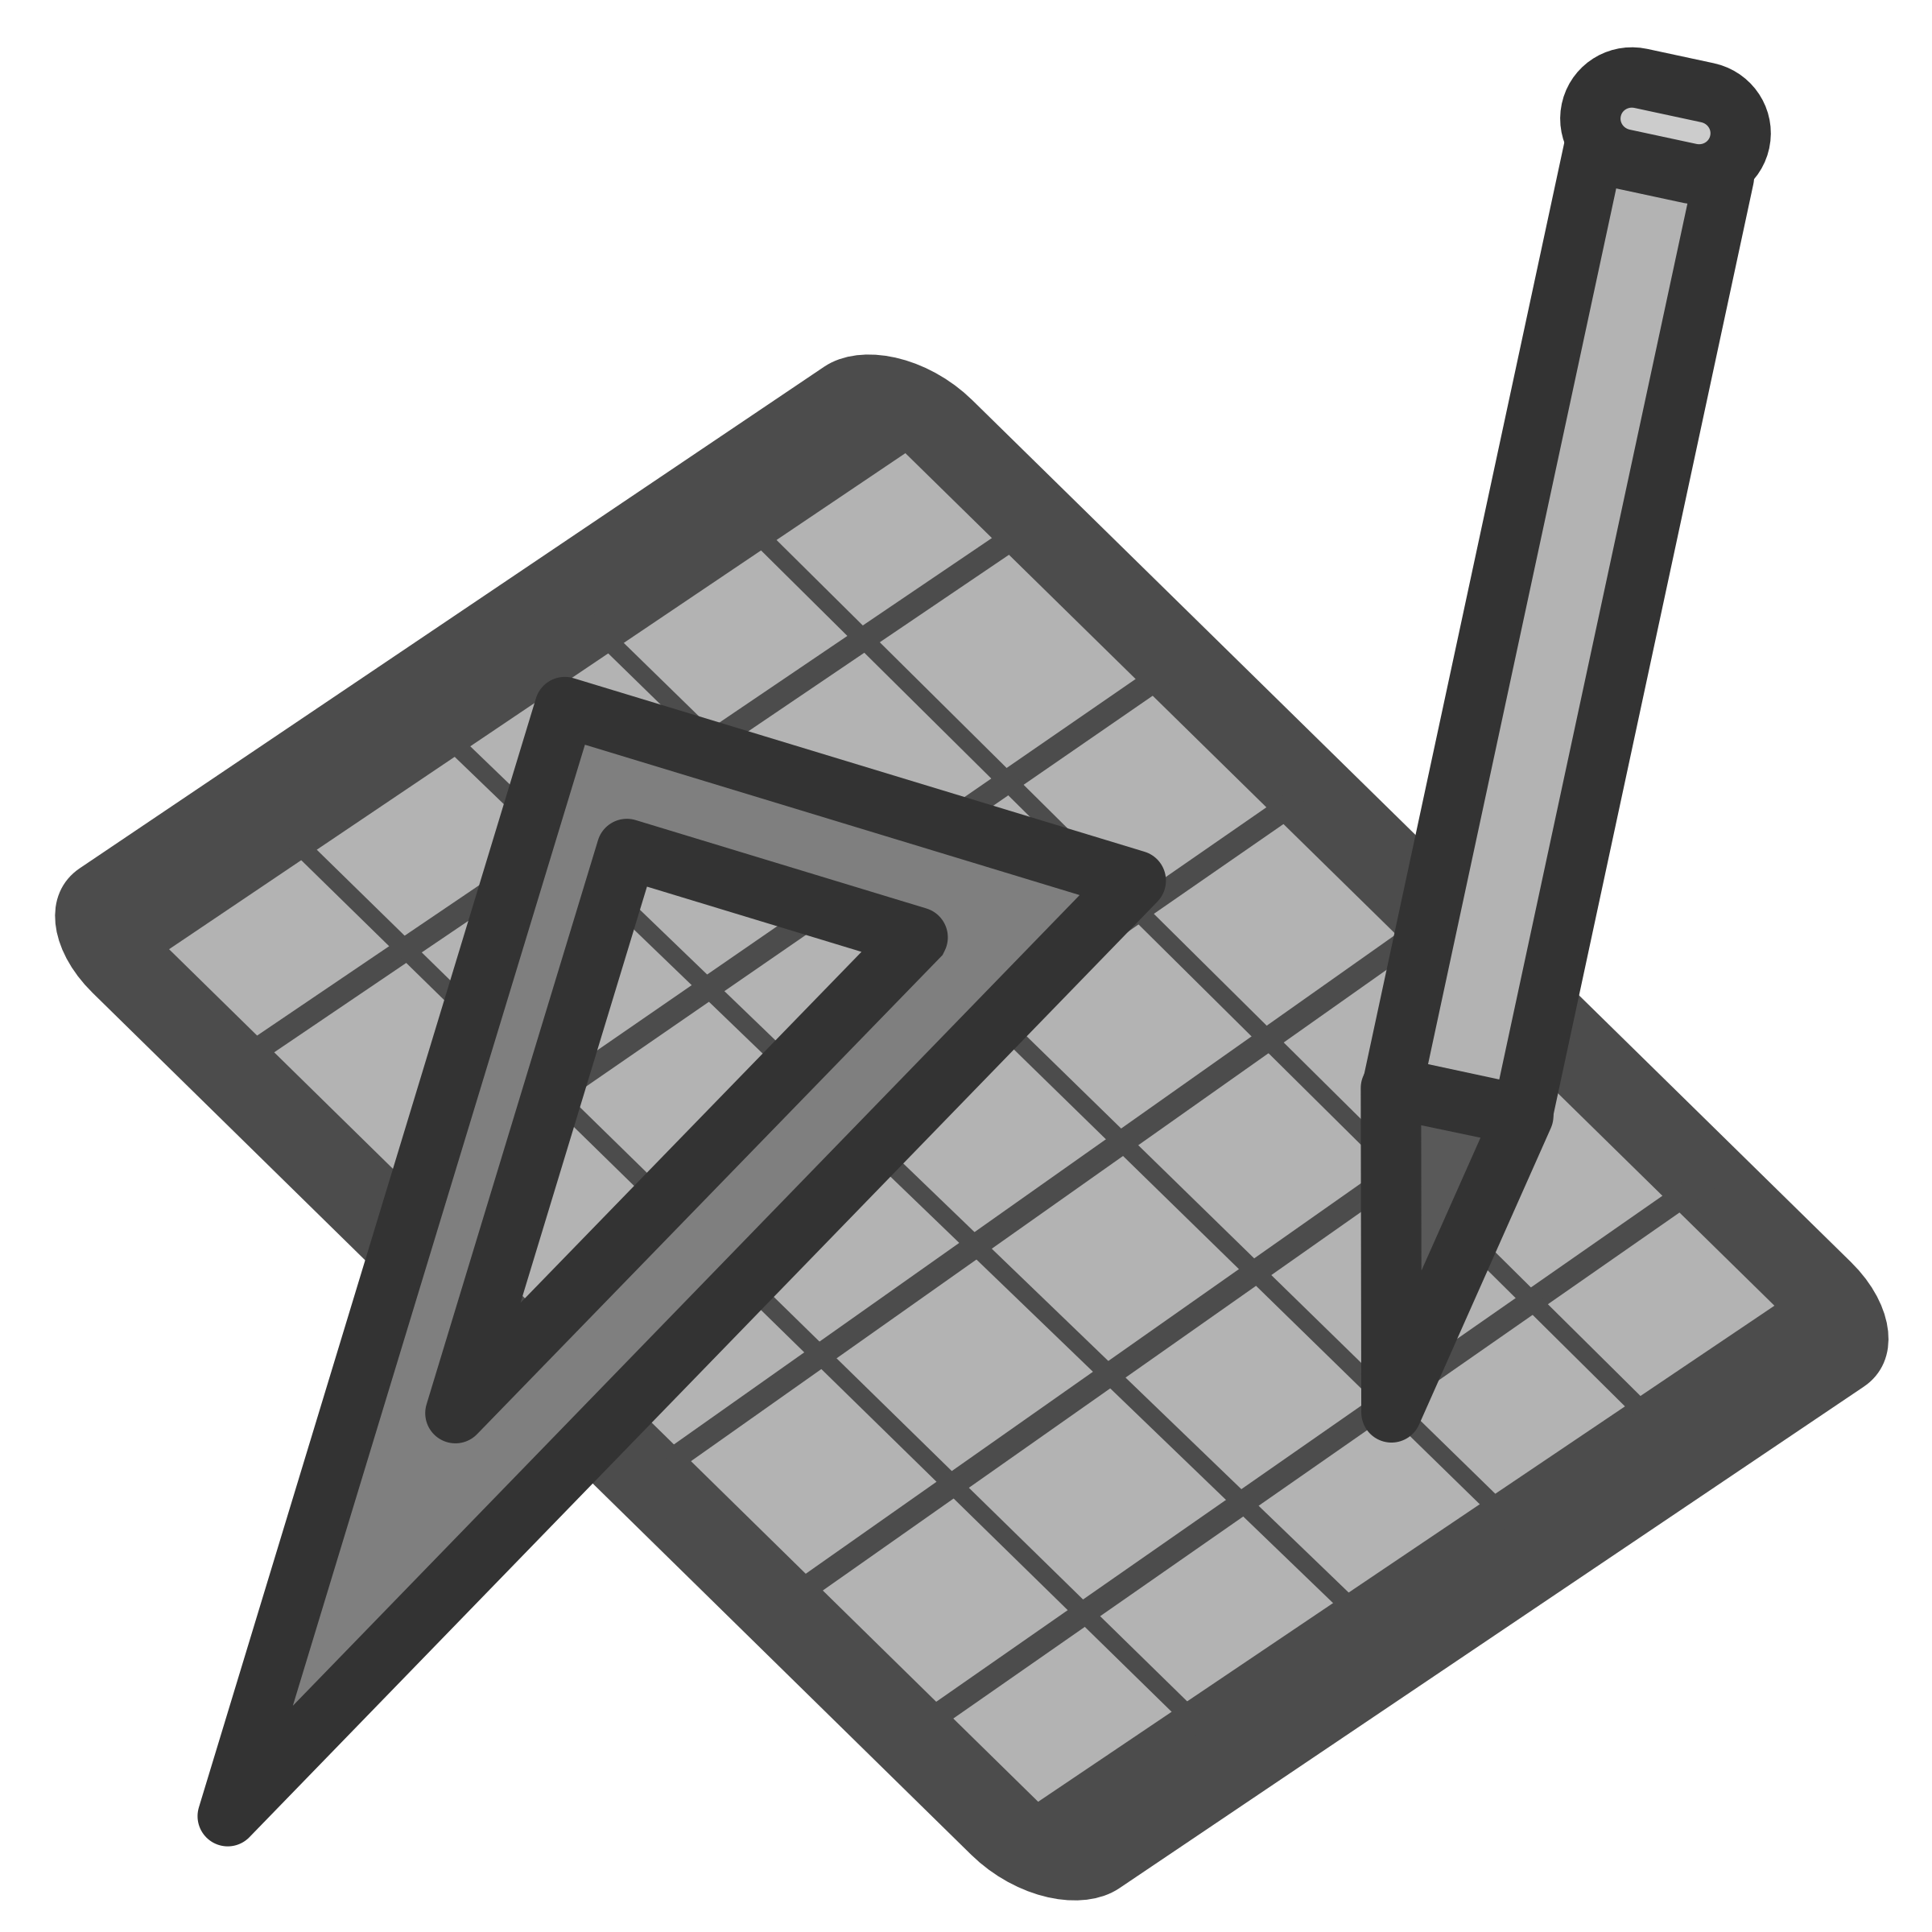 Geometry clipart #1, Download drawings